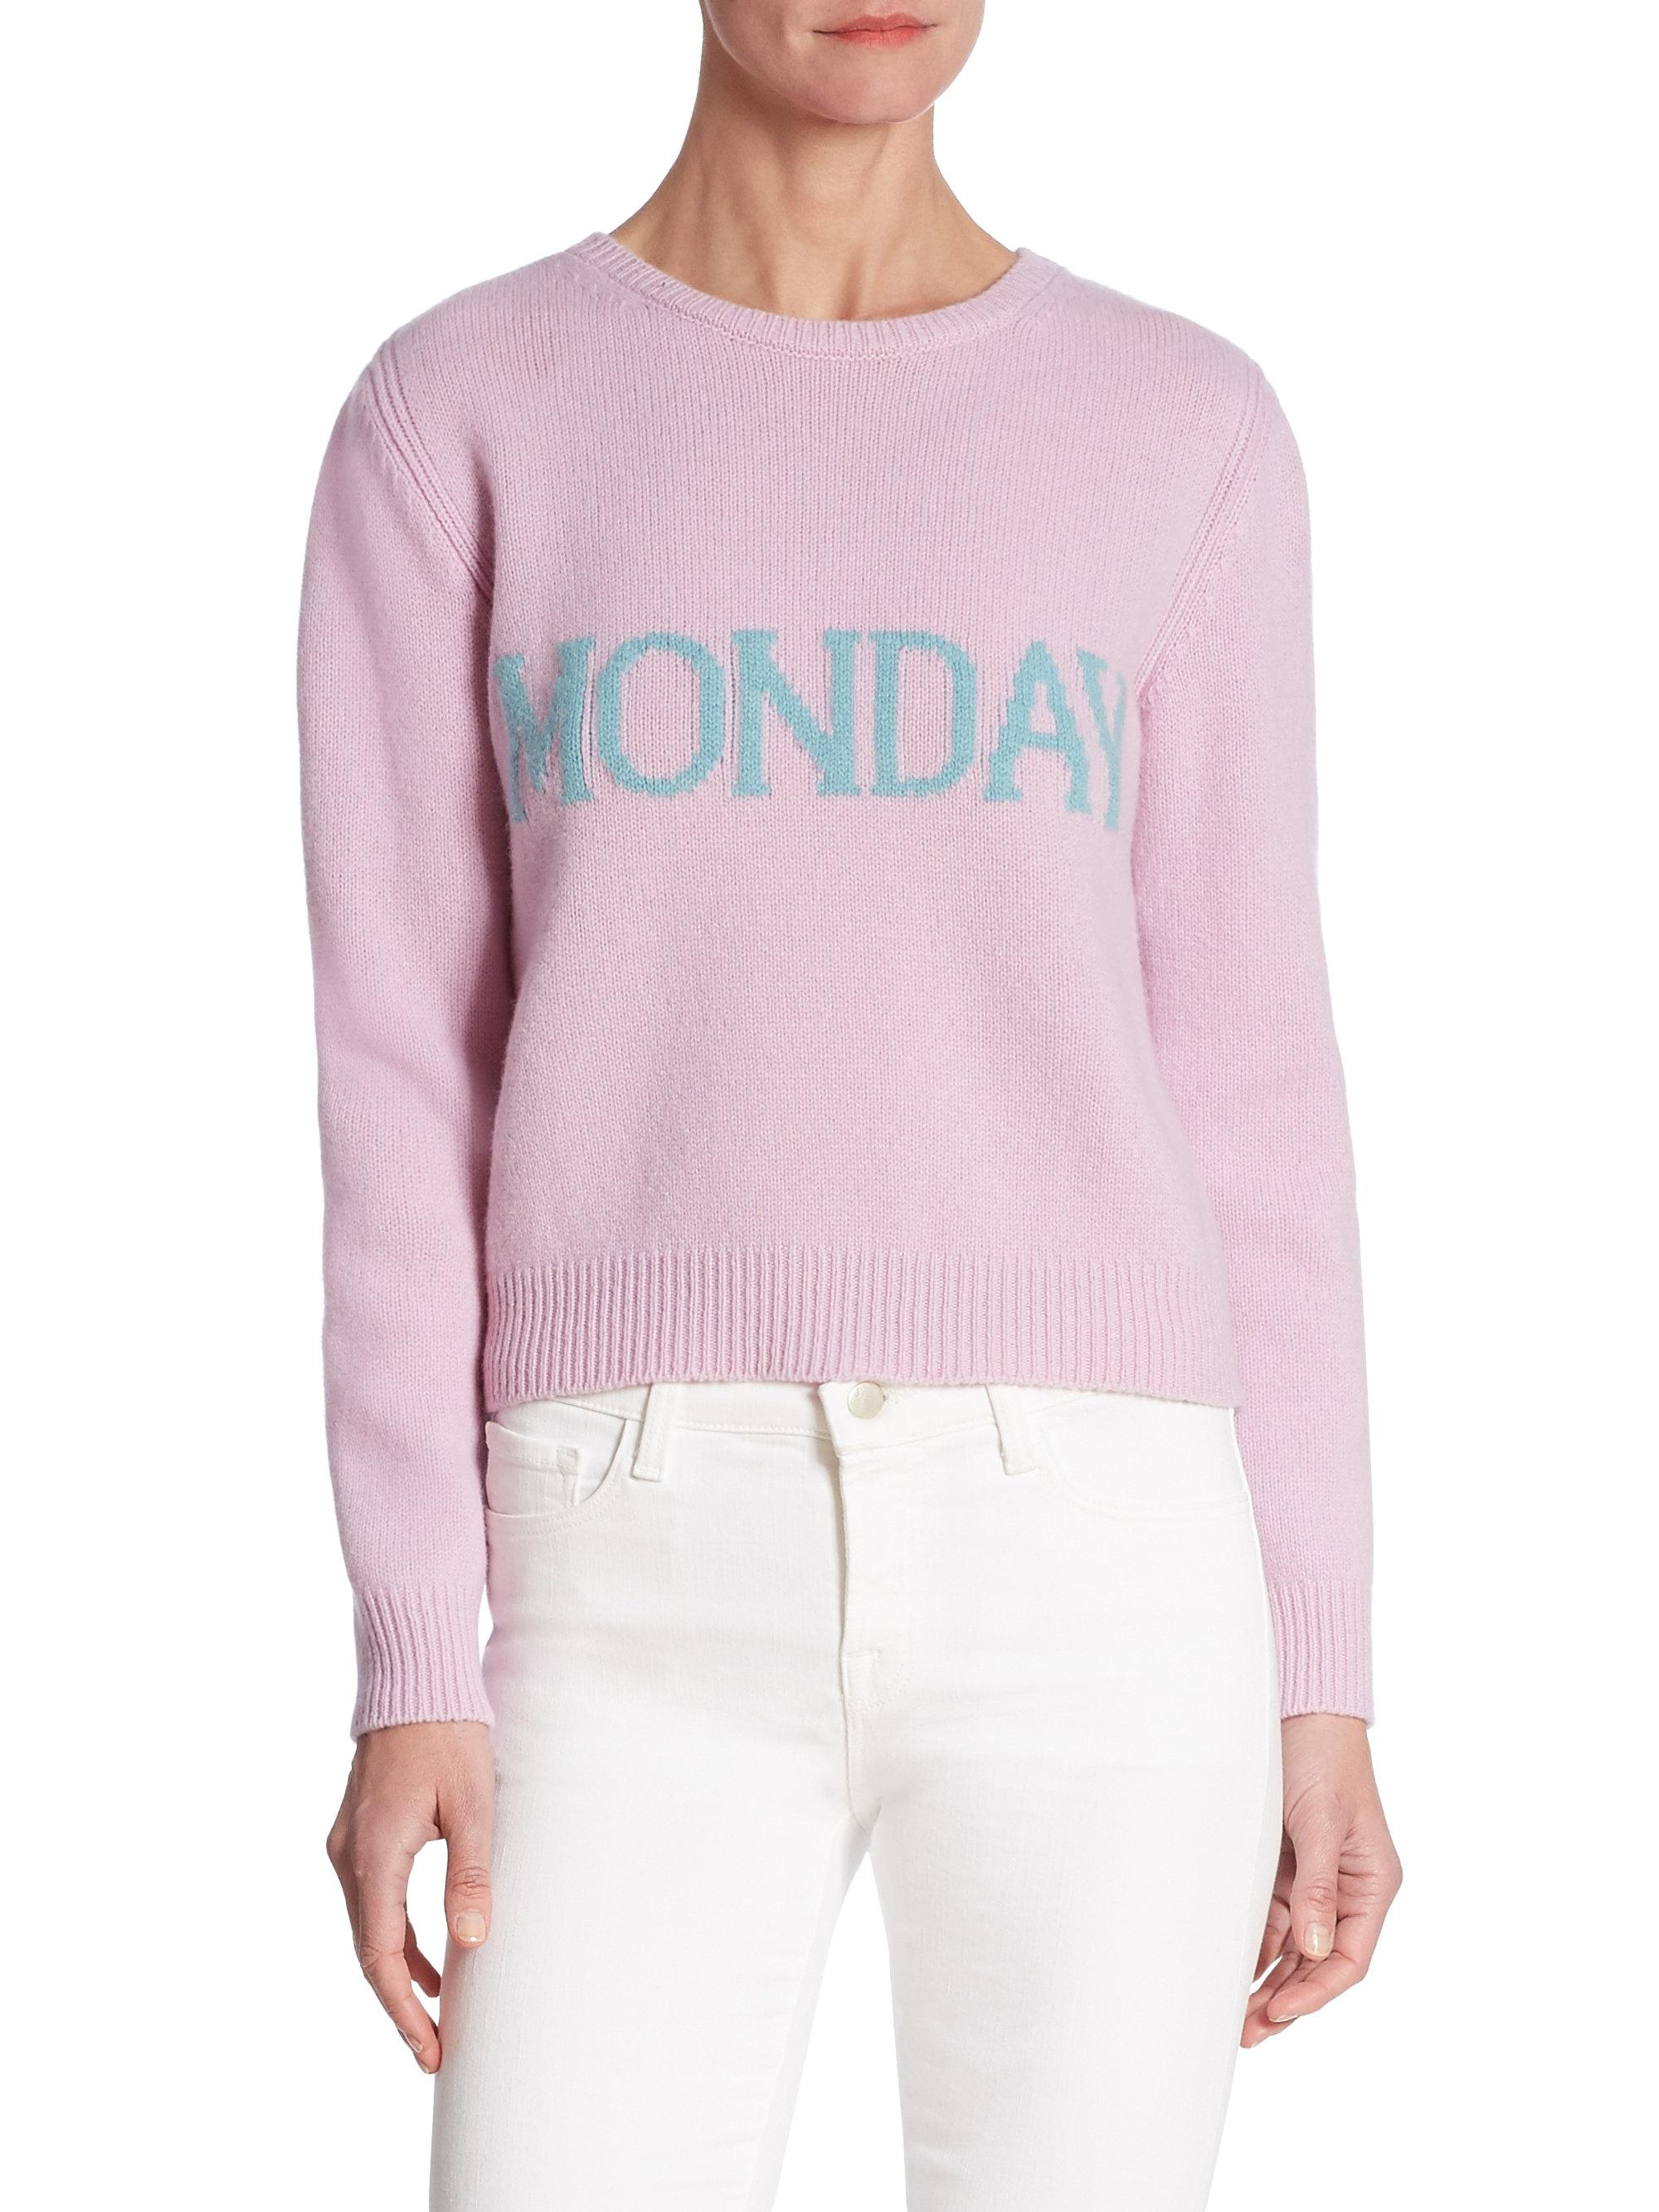 enorme sconto 1268a 24d33 Alberta Ferretti Monday Wool-blend Sweater in Pink - Lyst